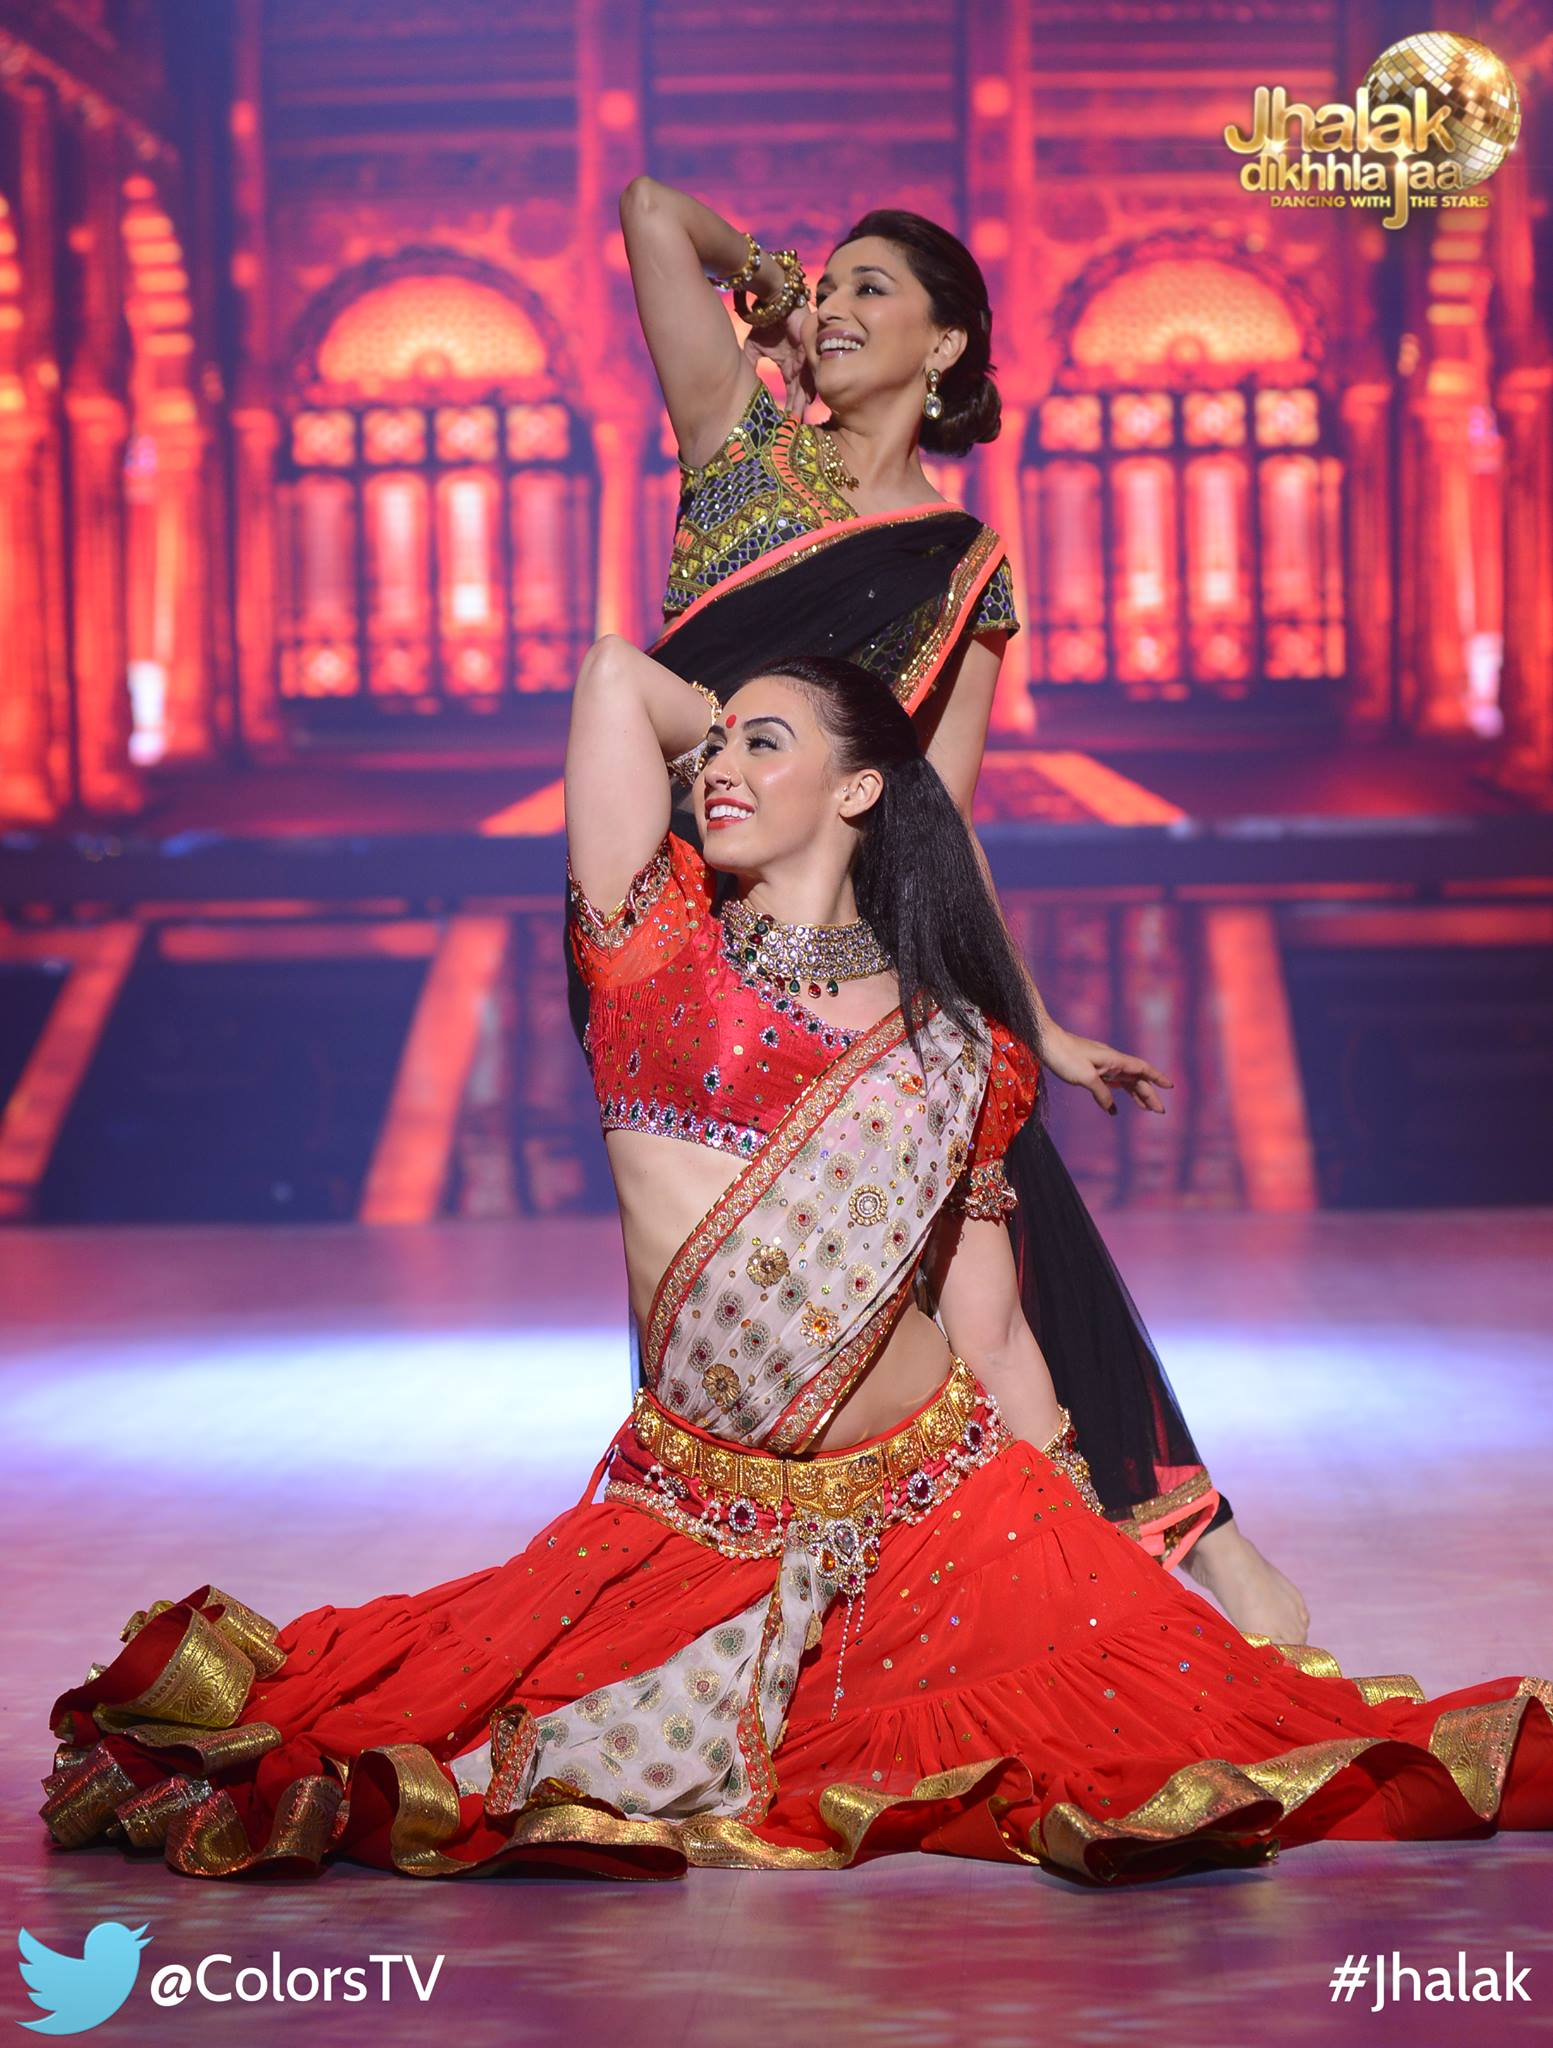 Jhalak Dikhhla Jaa Week 3 of Dance Fusion and More ...